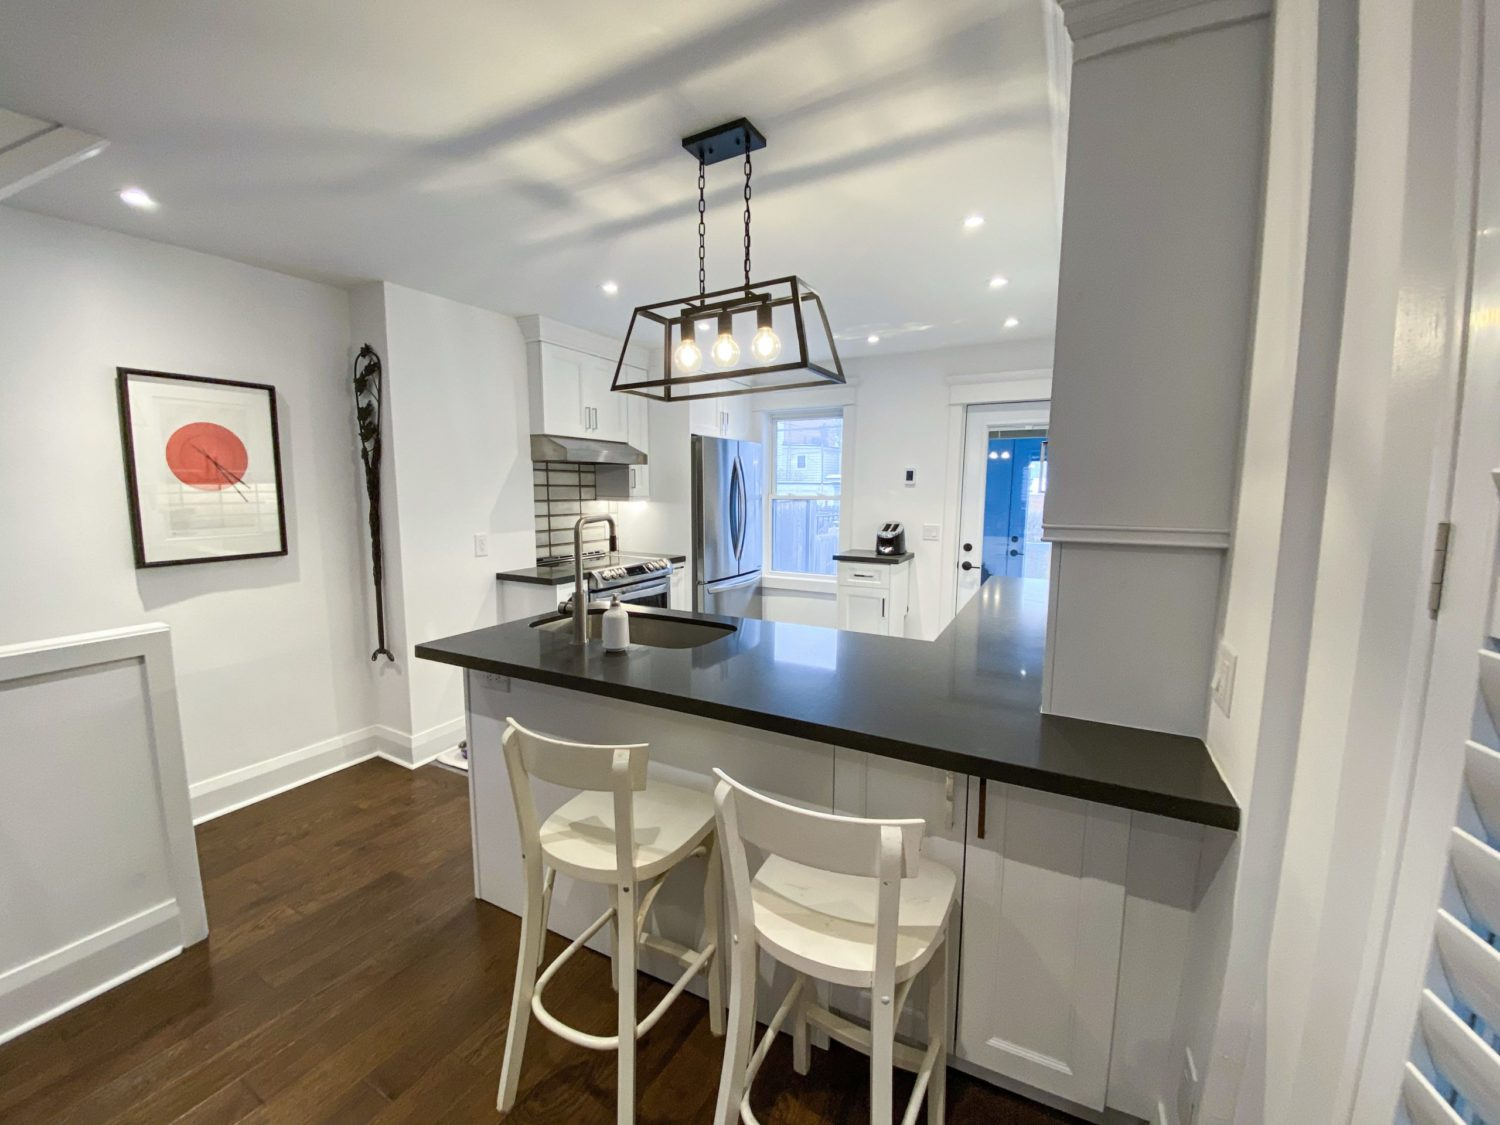 Hazelwood Ave. – Toronto Danforth Contemporary Kitchen - Featured Image